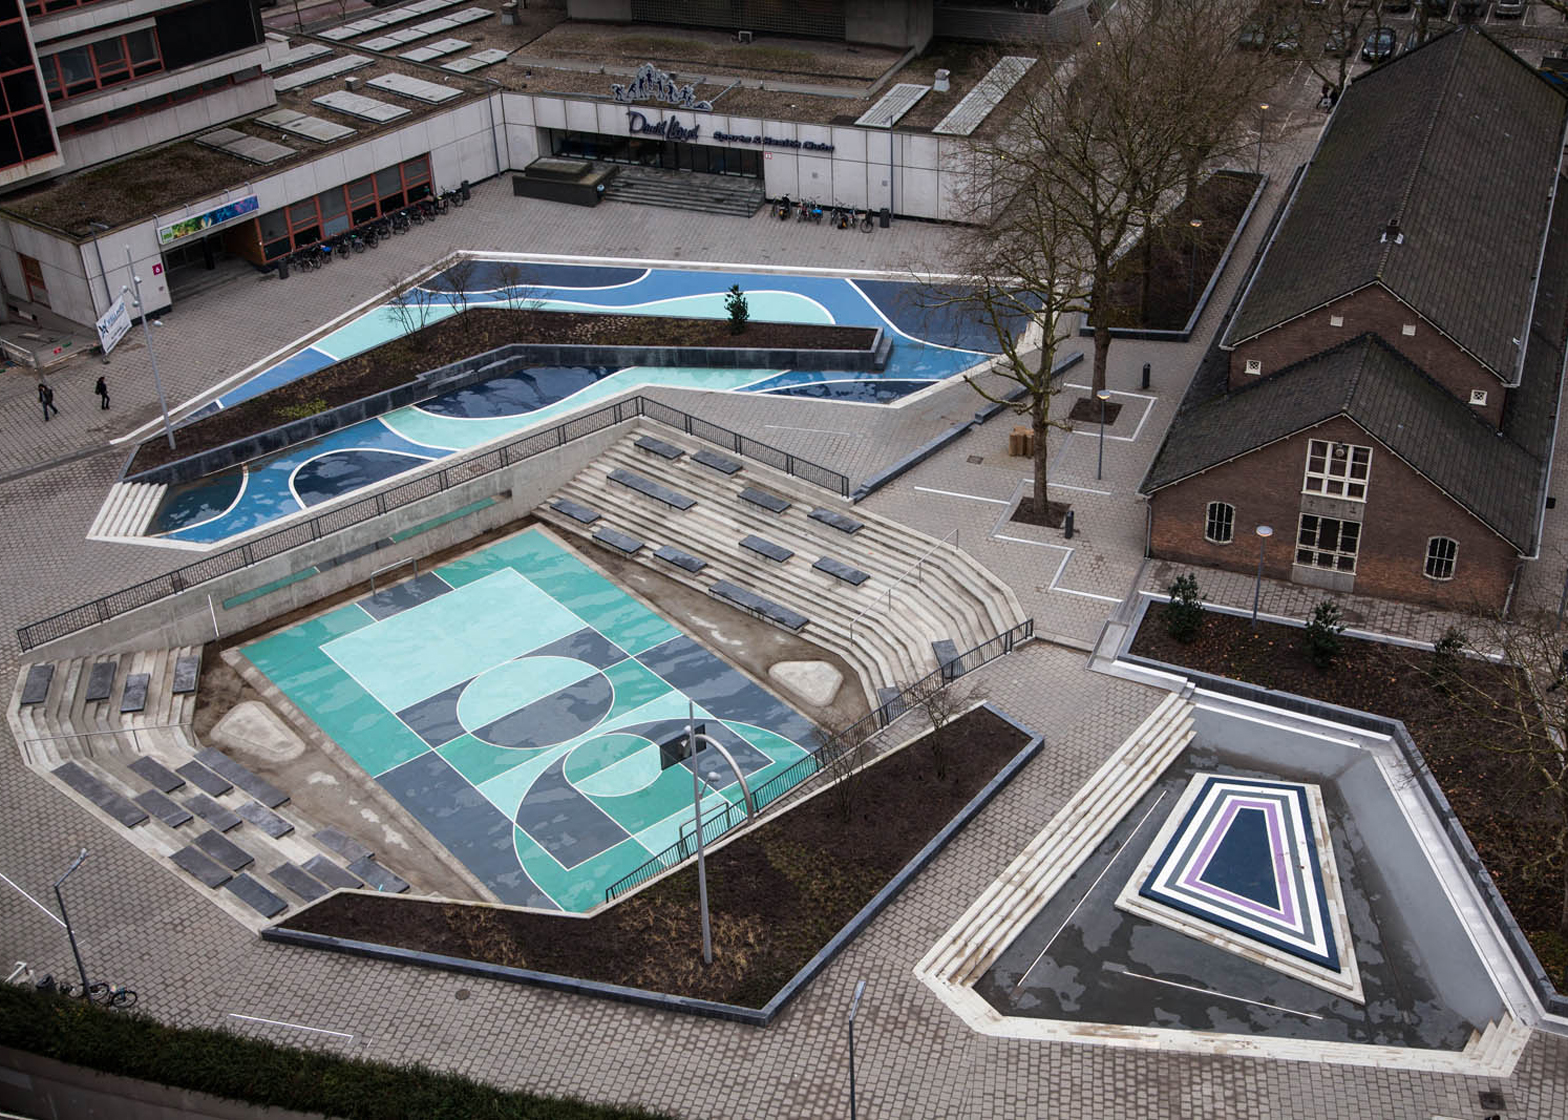 Water Squares at Benthemplein, Rotterdam, by De Urbanisten